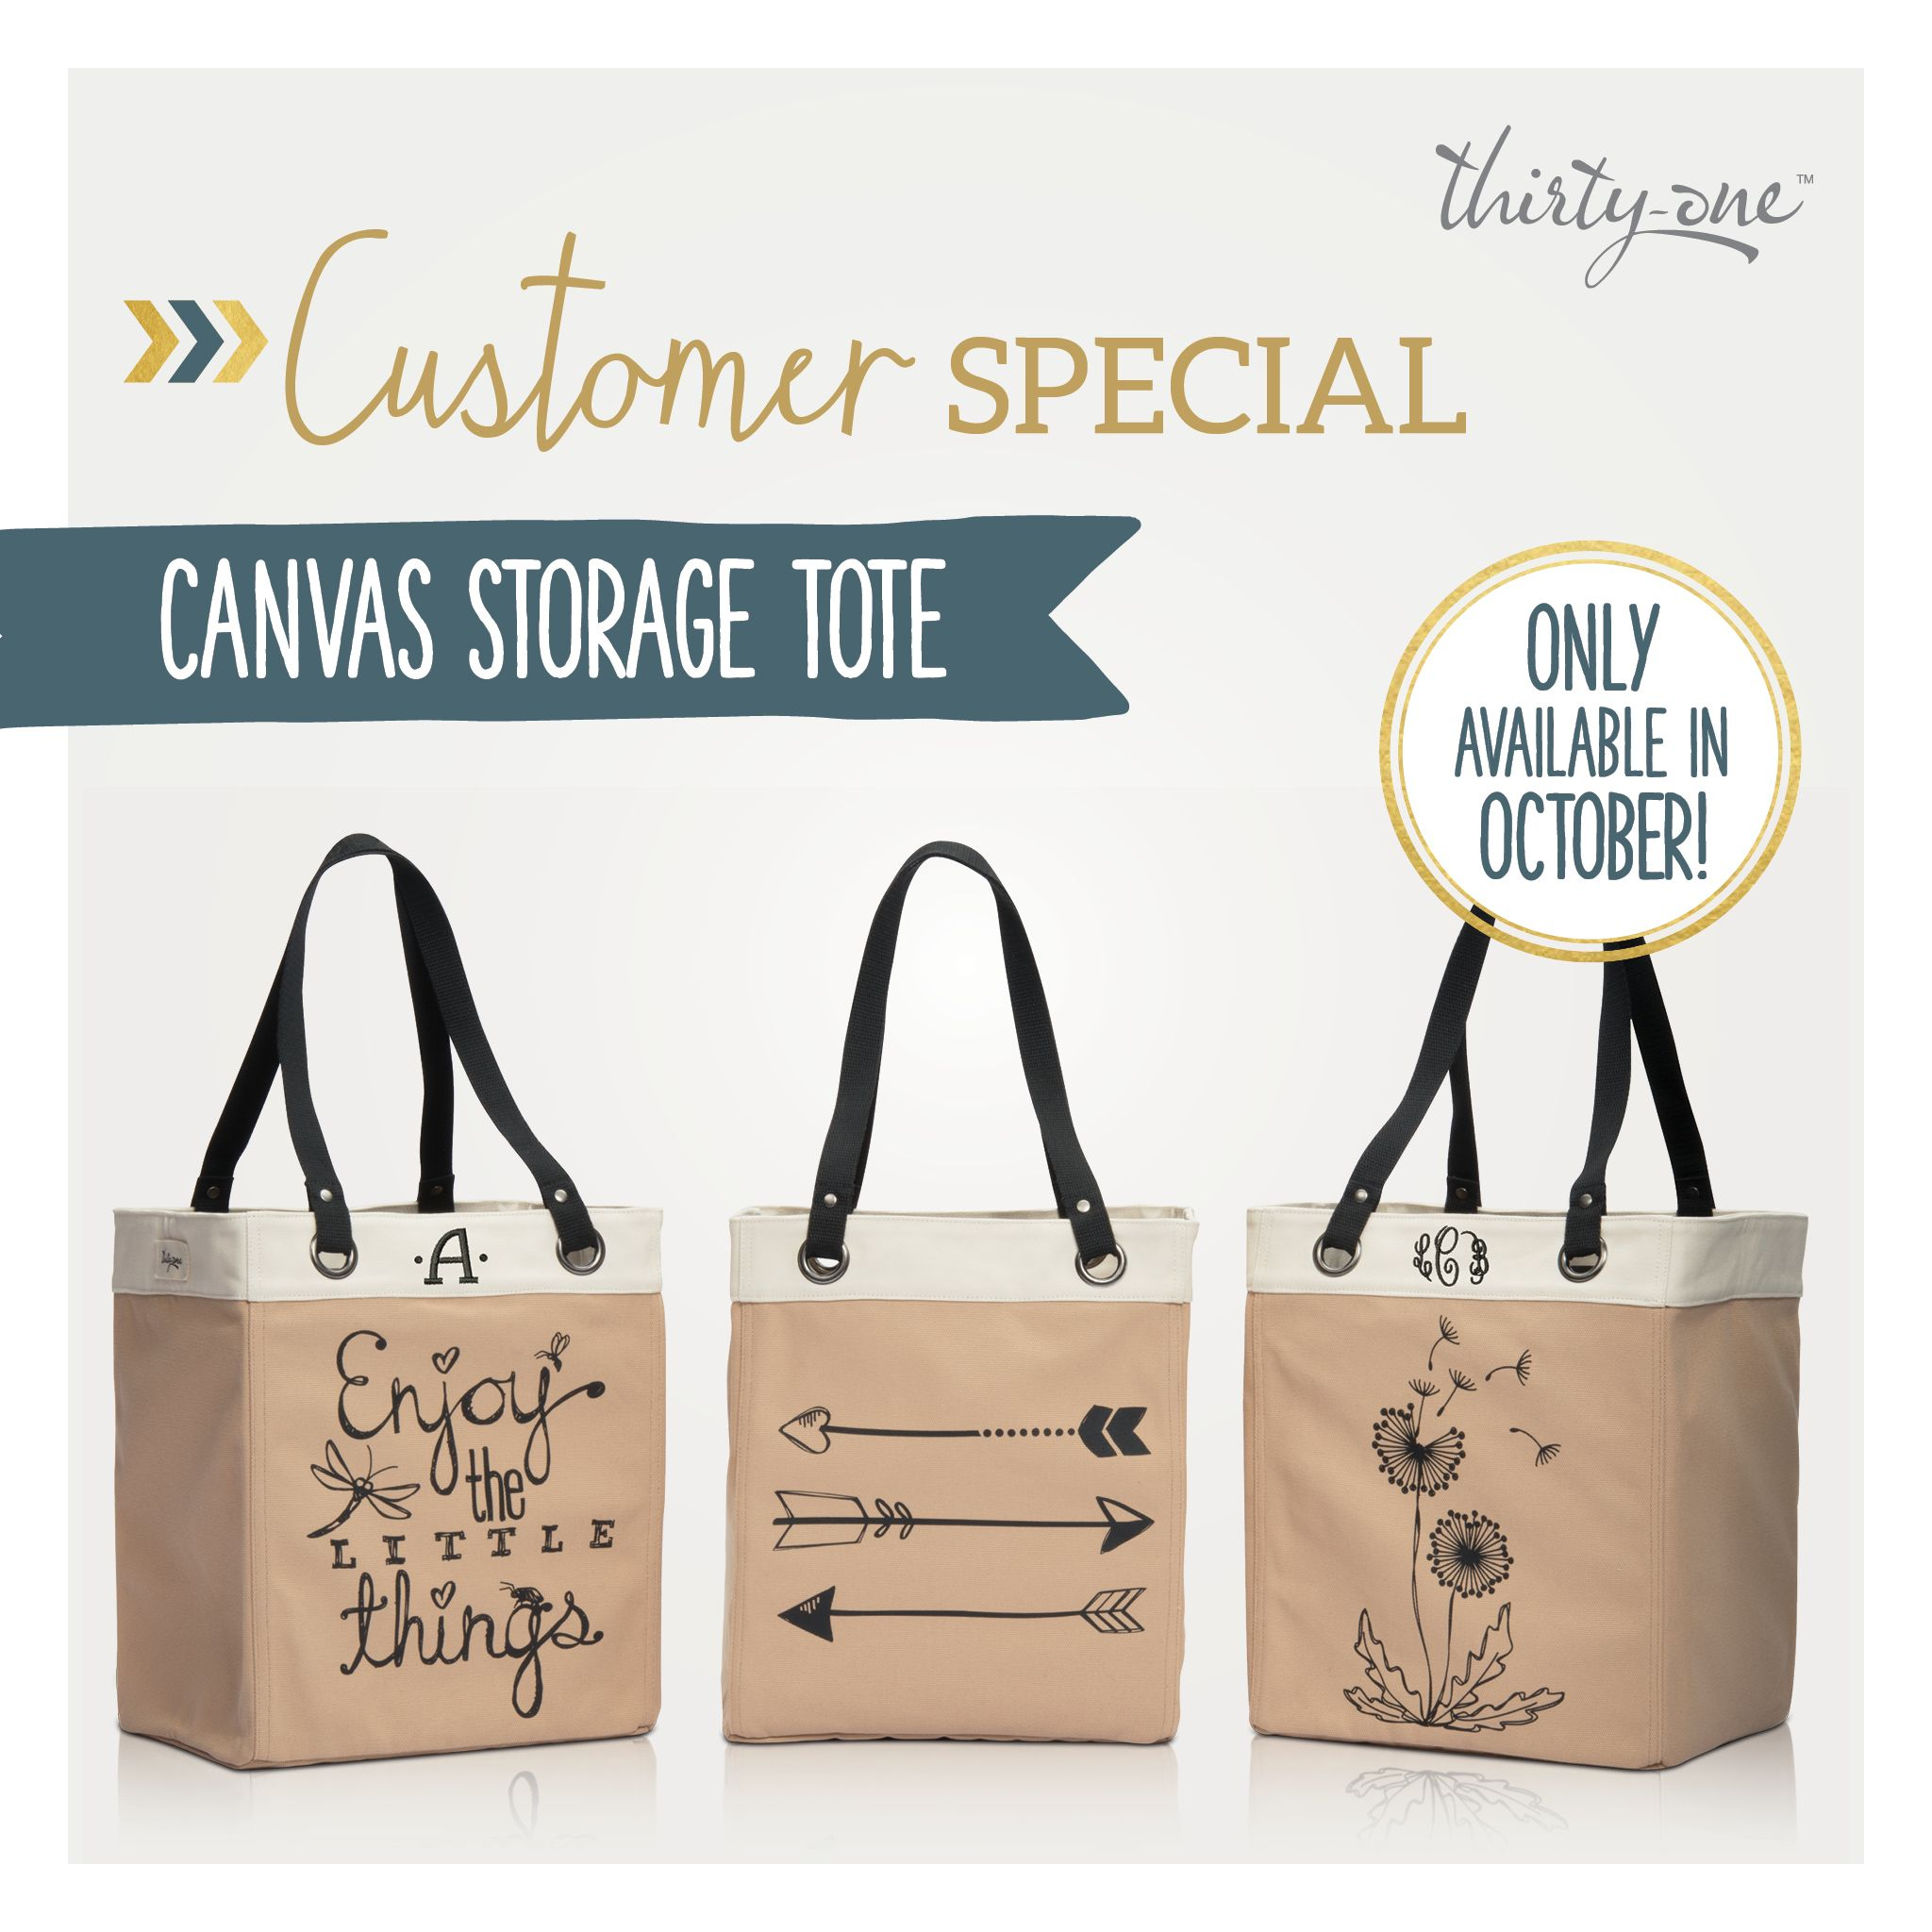 Thirty Oneu0027s October Customer Special!   Canvas Storage Tote   Only  Available This Month